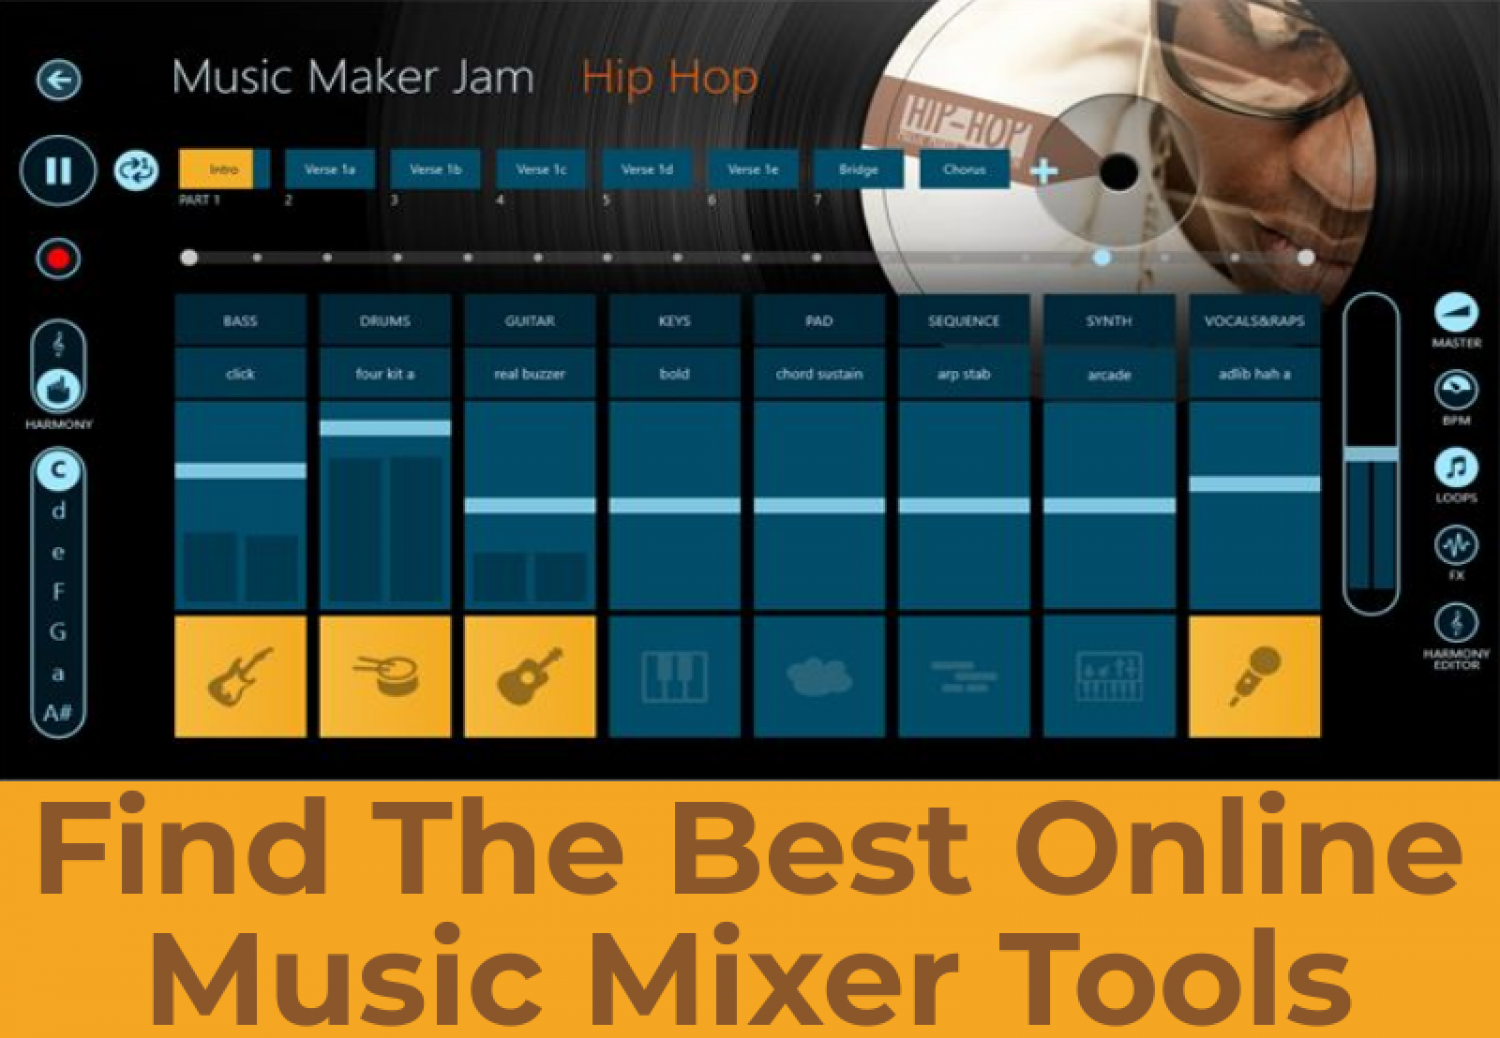 Find The Best Online Music Mixer Tools - SnapJam Infographic